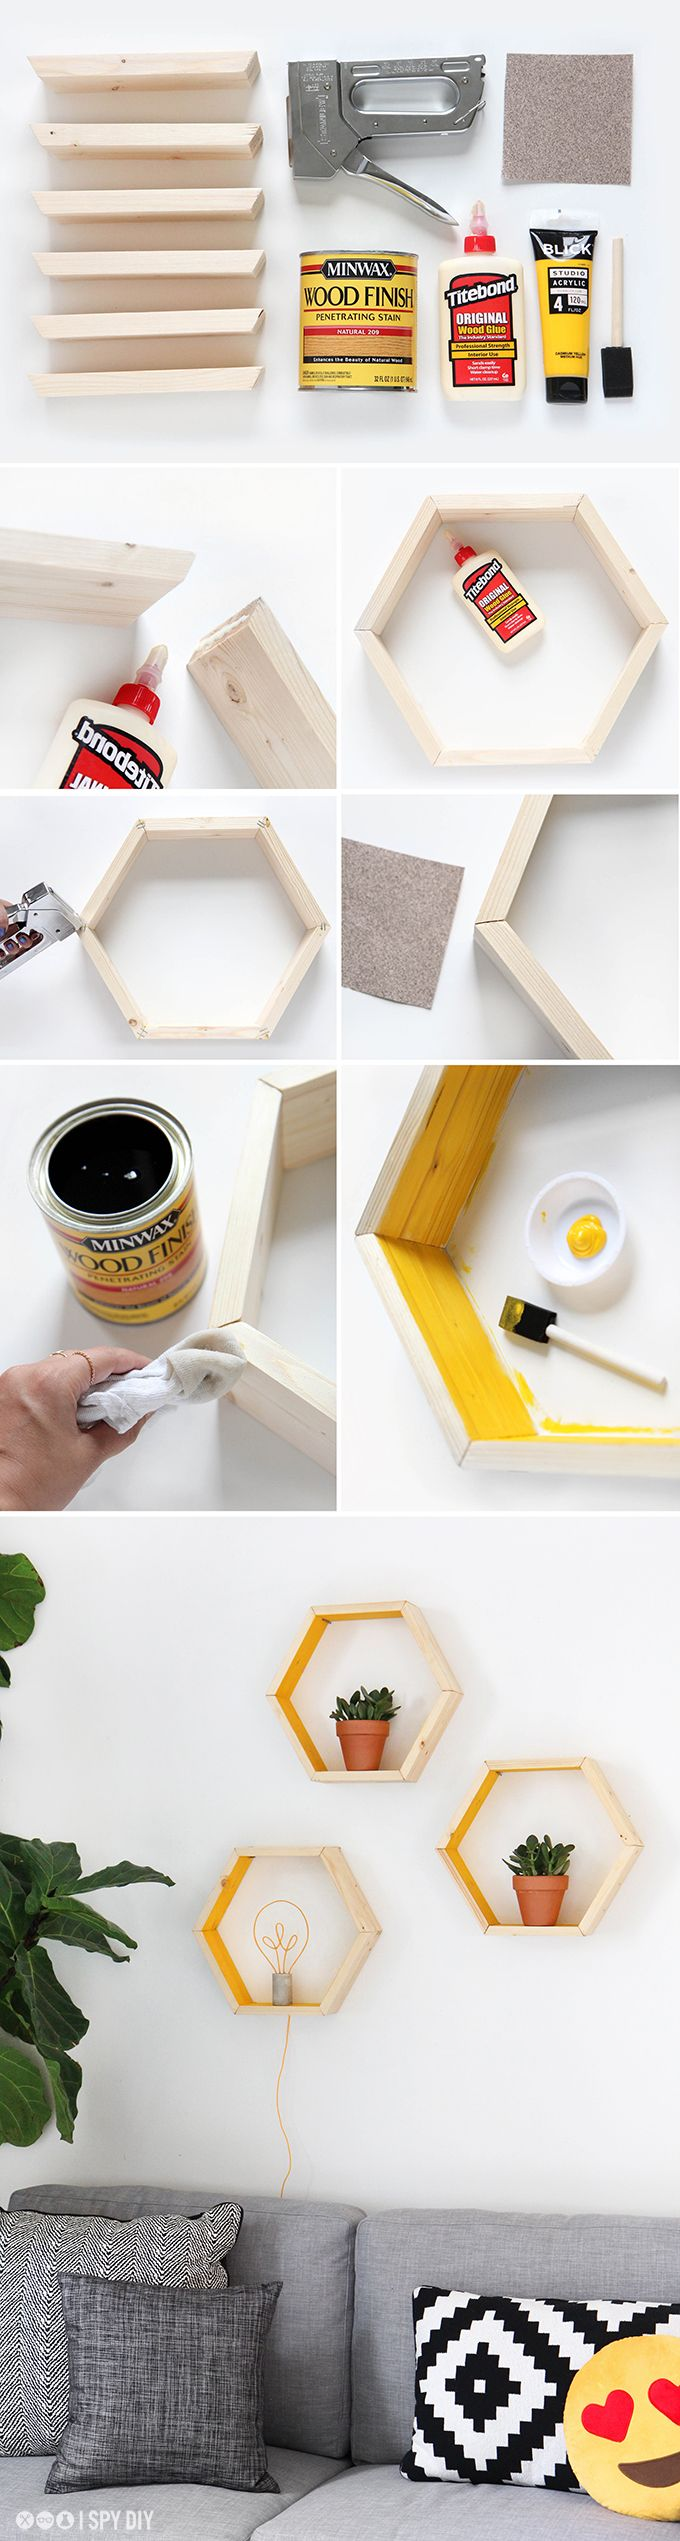 DIY Hexagonal Shelves